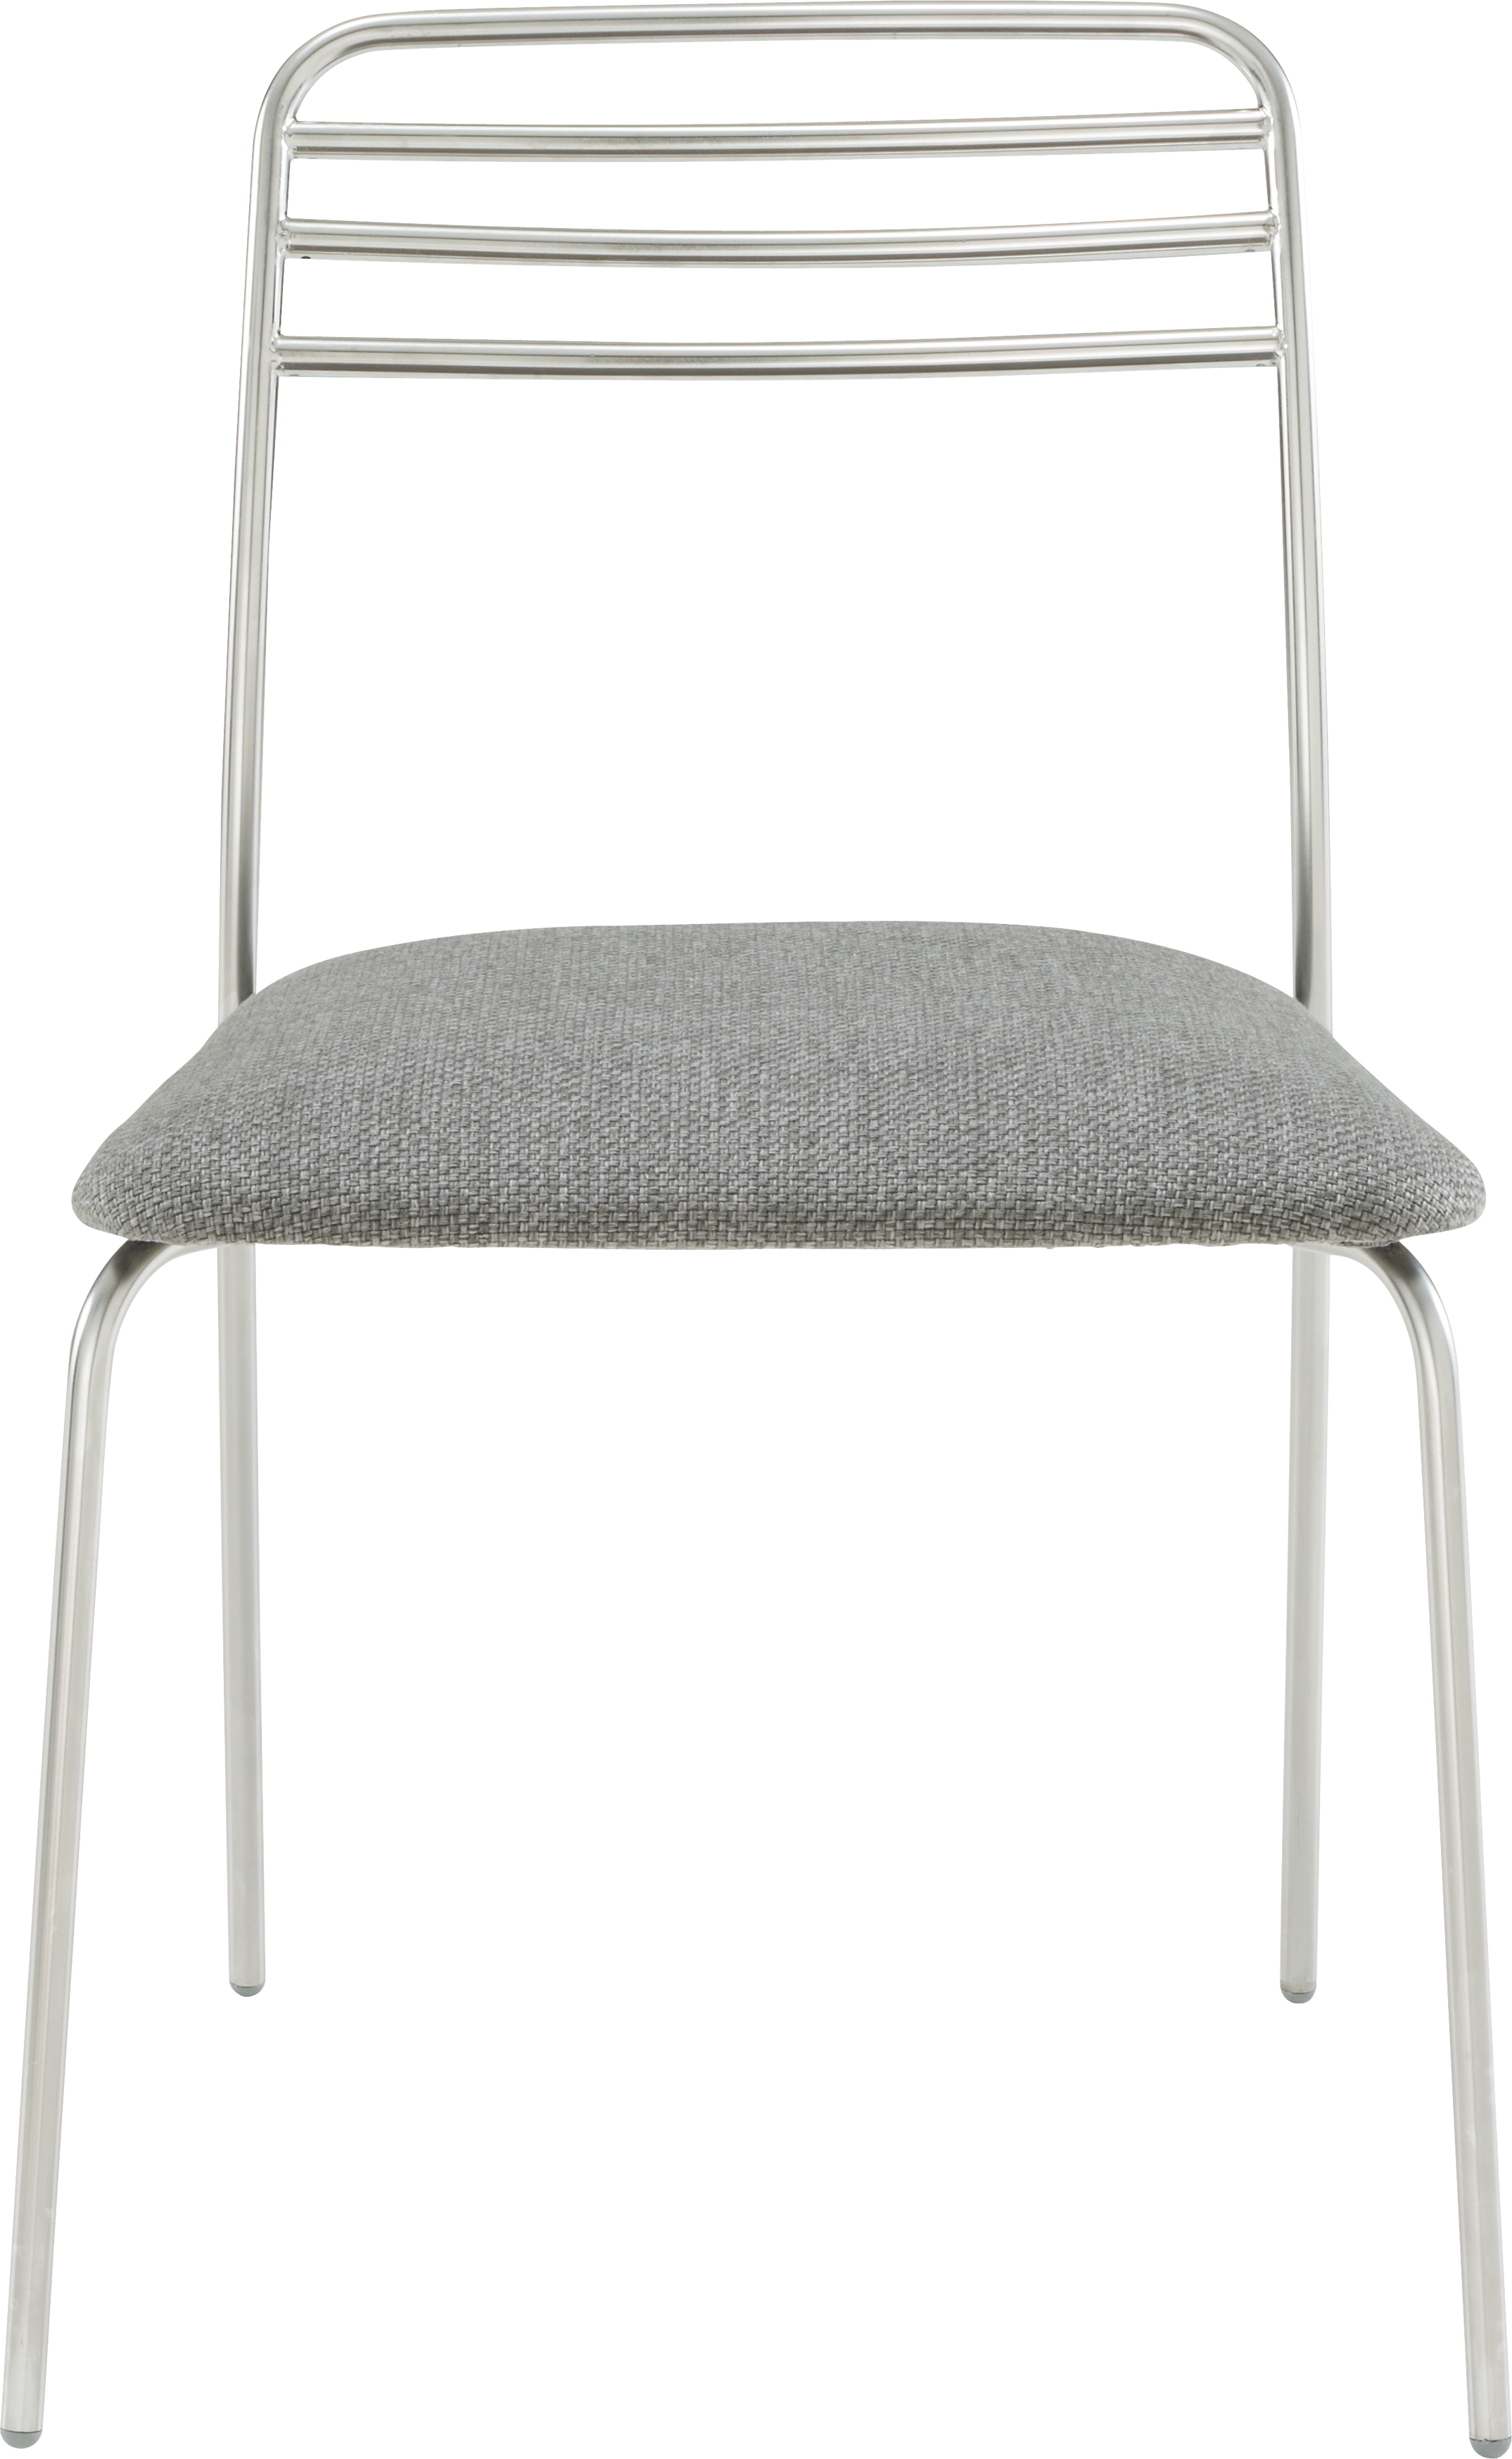 uploads chair chair PNG6857 3